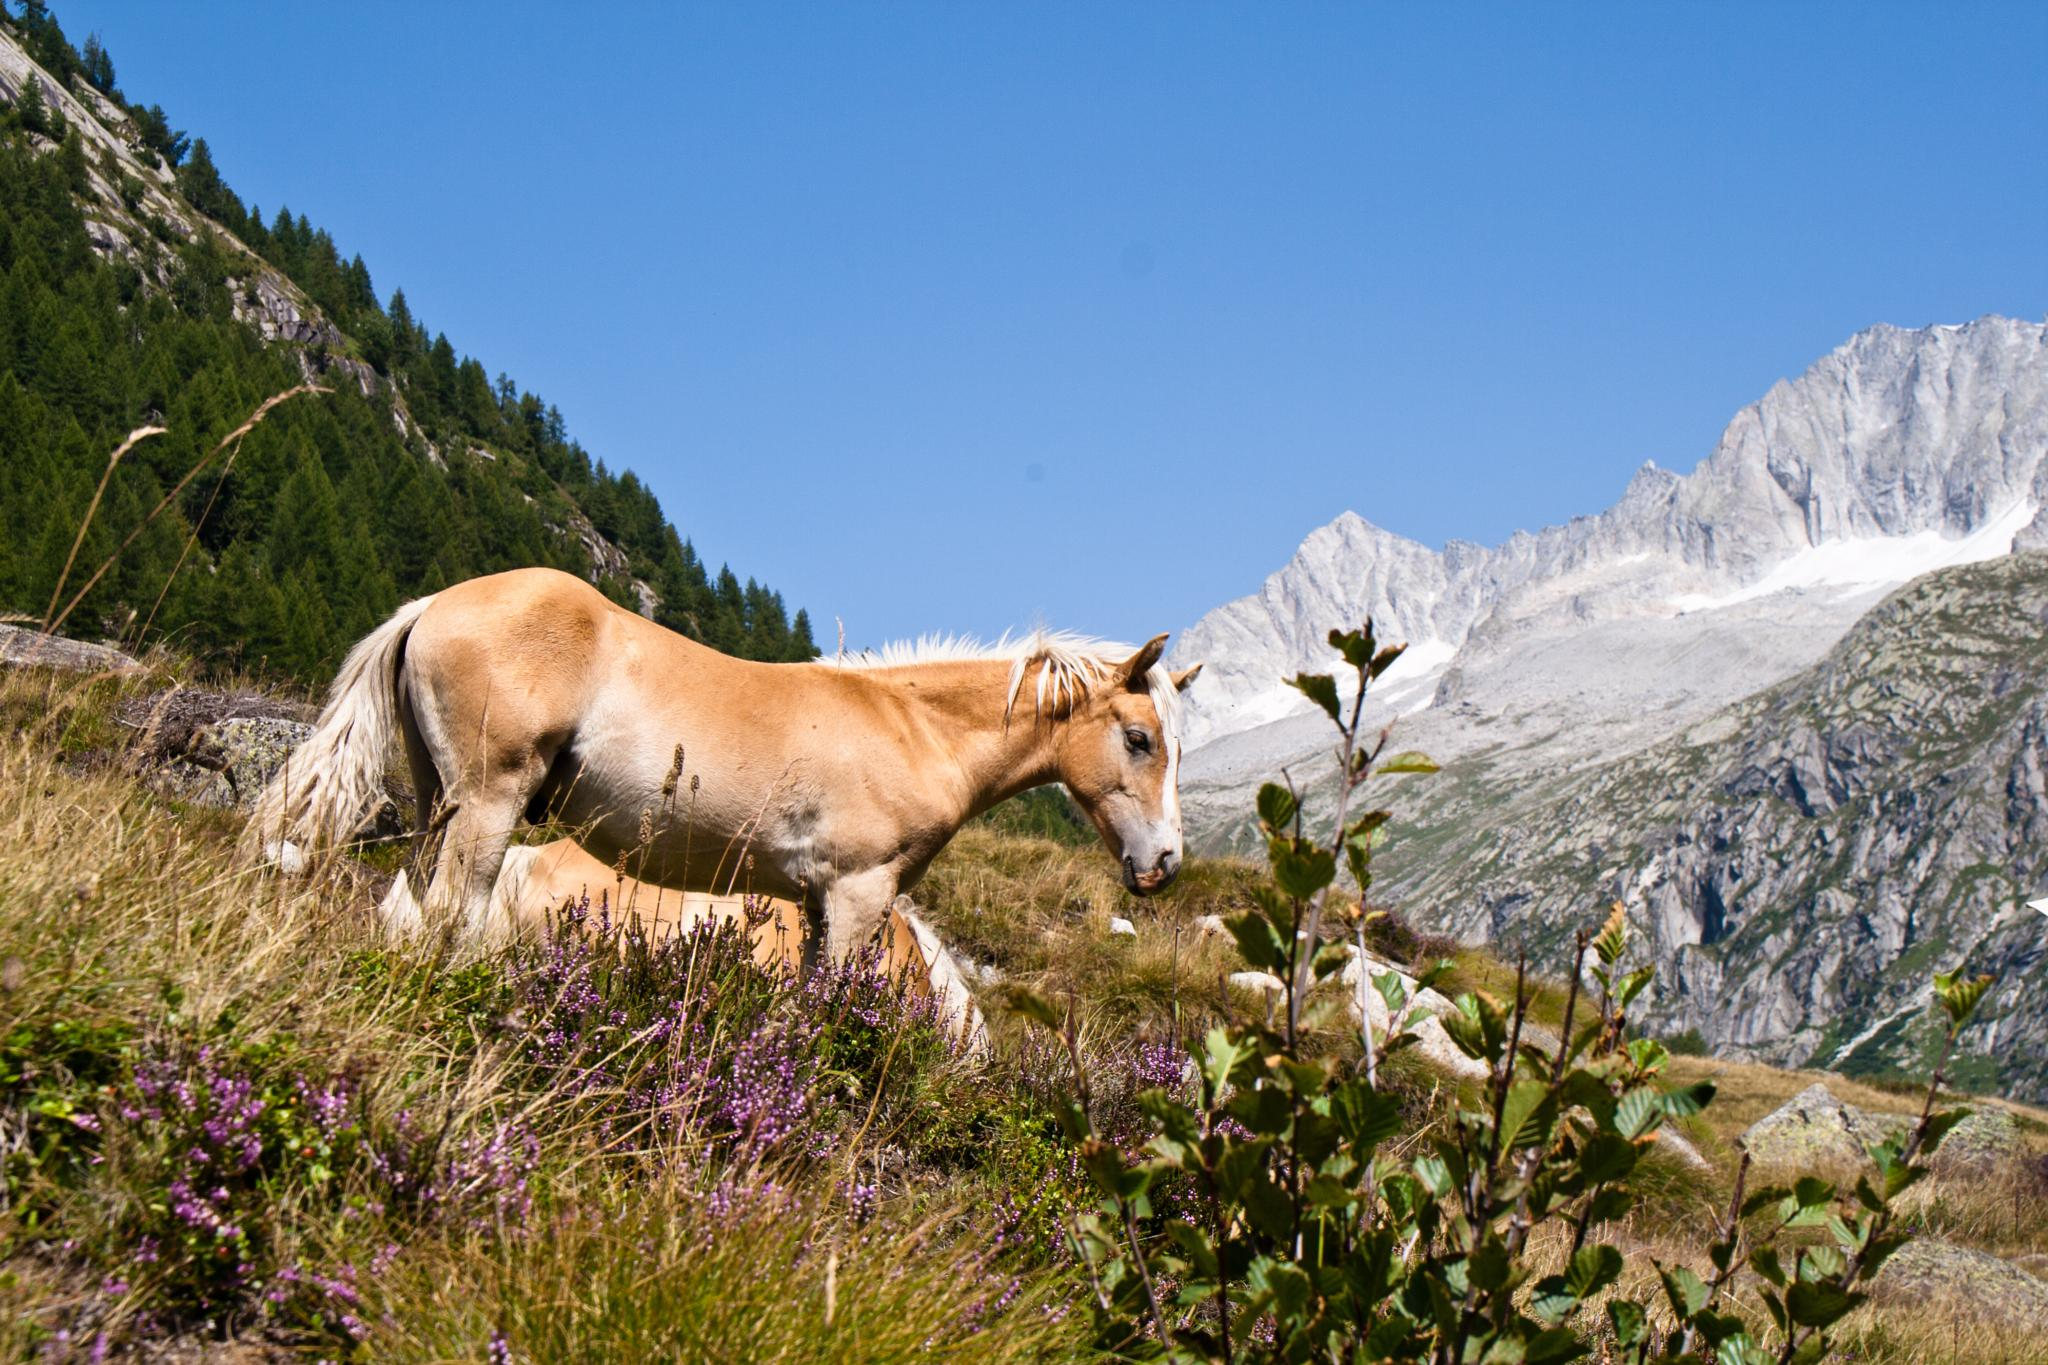 Horse by alessandronicolodi